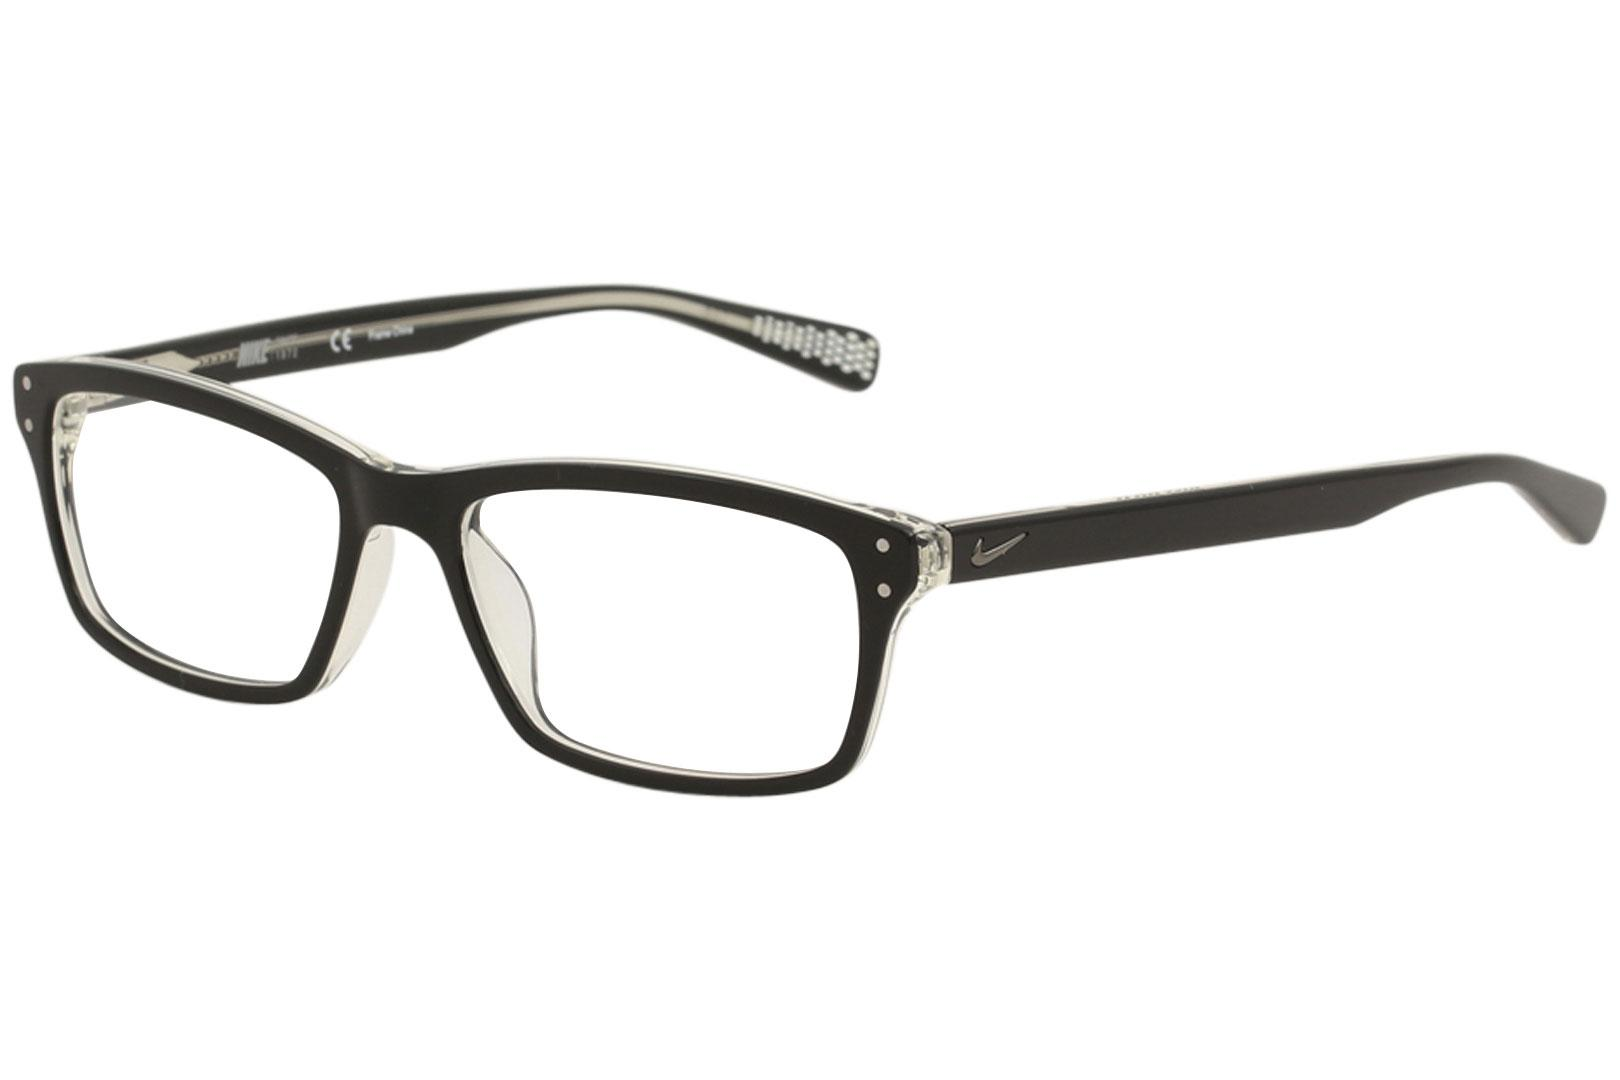 Nike Men\'s Eyeglasses 7242 Full Rim Optical Frame